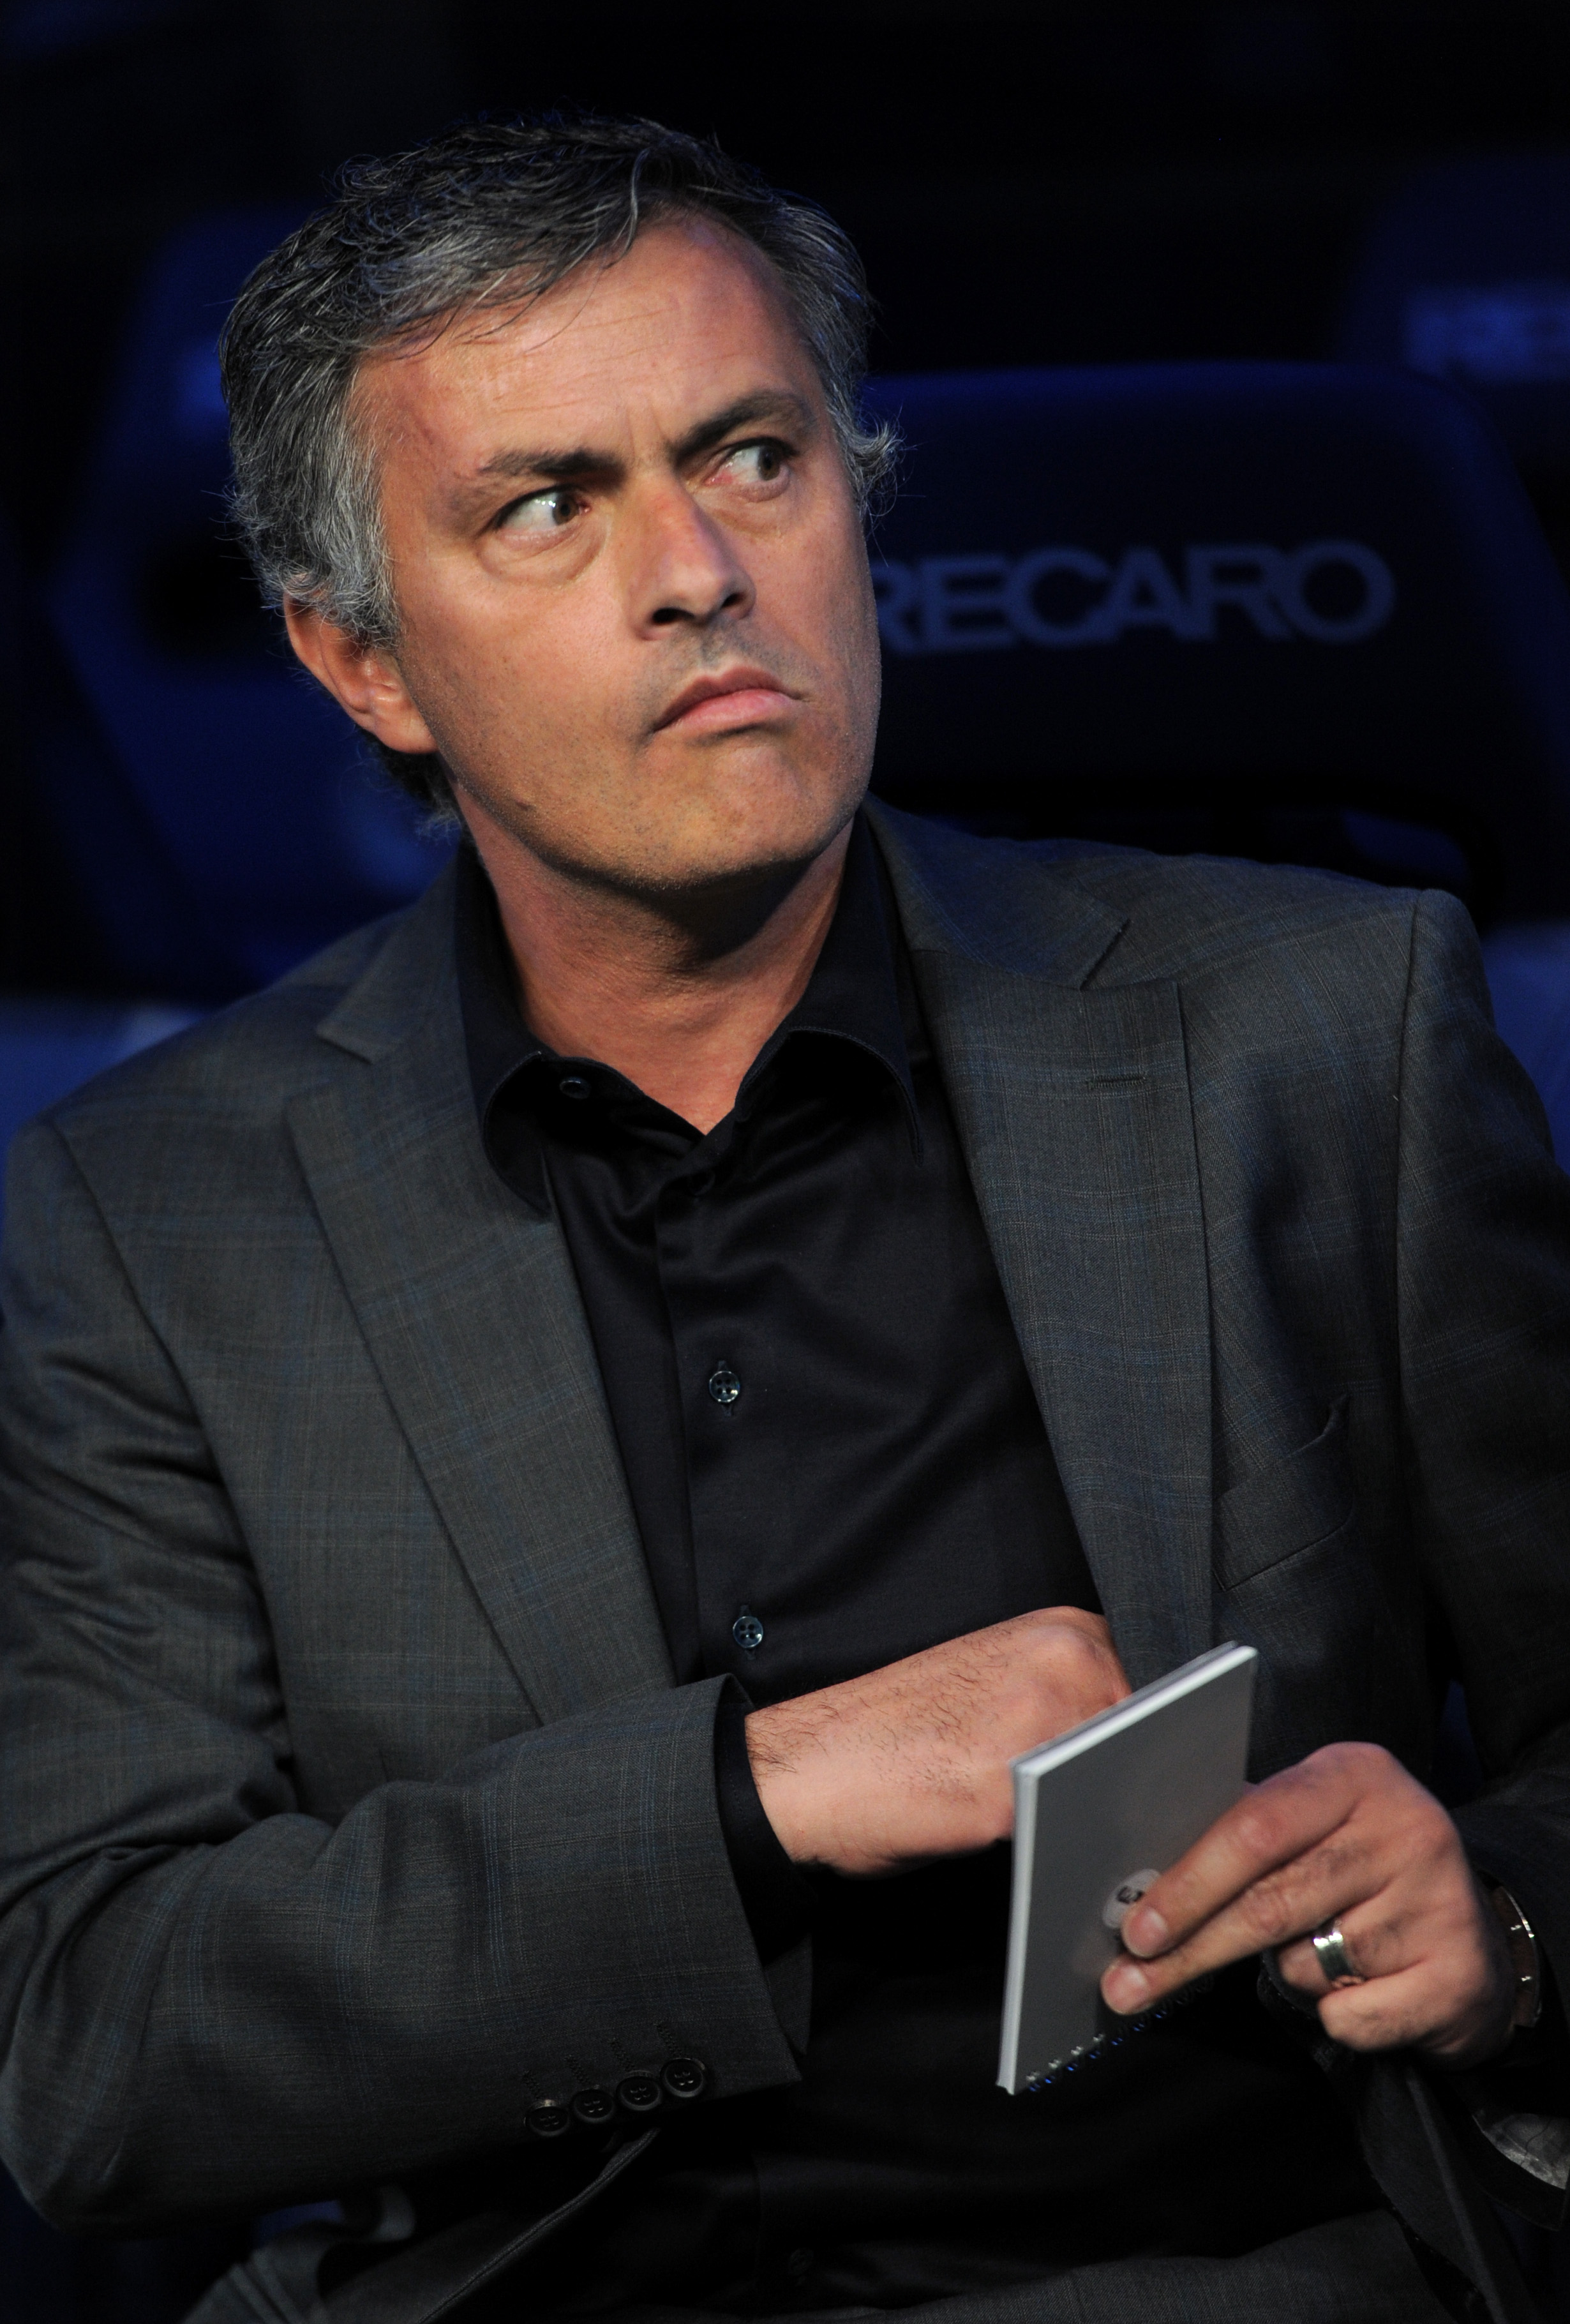 MADRID, SPAIN - APRIL 16:  Head coach Jose Mourinho of Real Madrid looks on prior to the start of the la Liga match between Real Madrid and Barcelona at Estadio Santiago Bernabeu on April 16, 2011 in Madrid, Spain.  (Photo by Jasper Juinen/Getty Images)